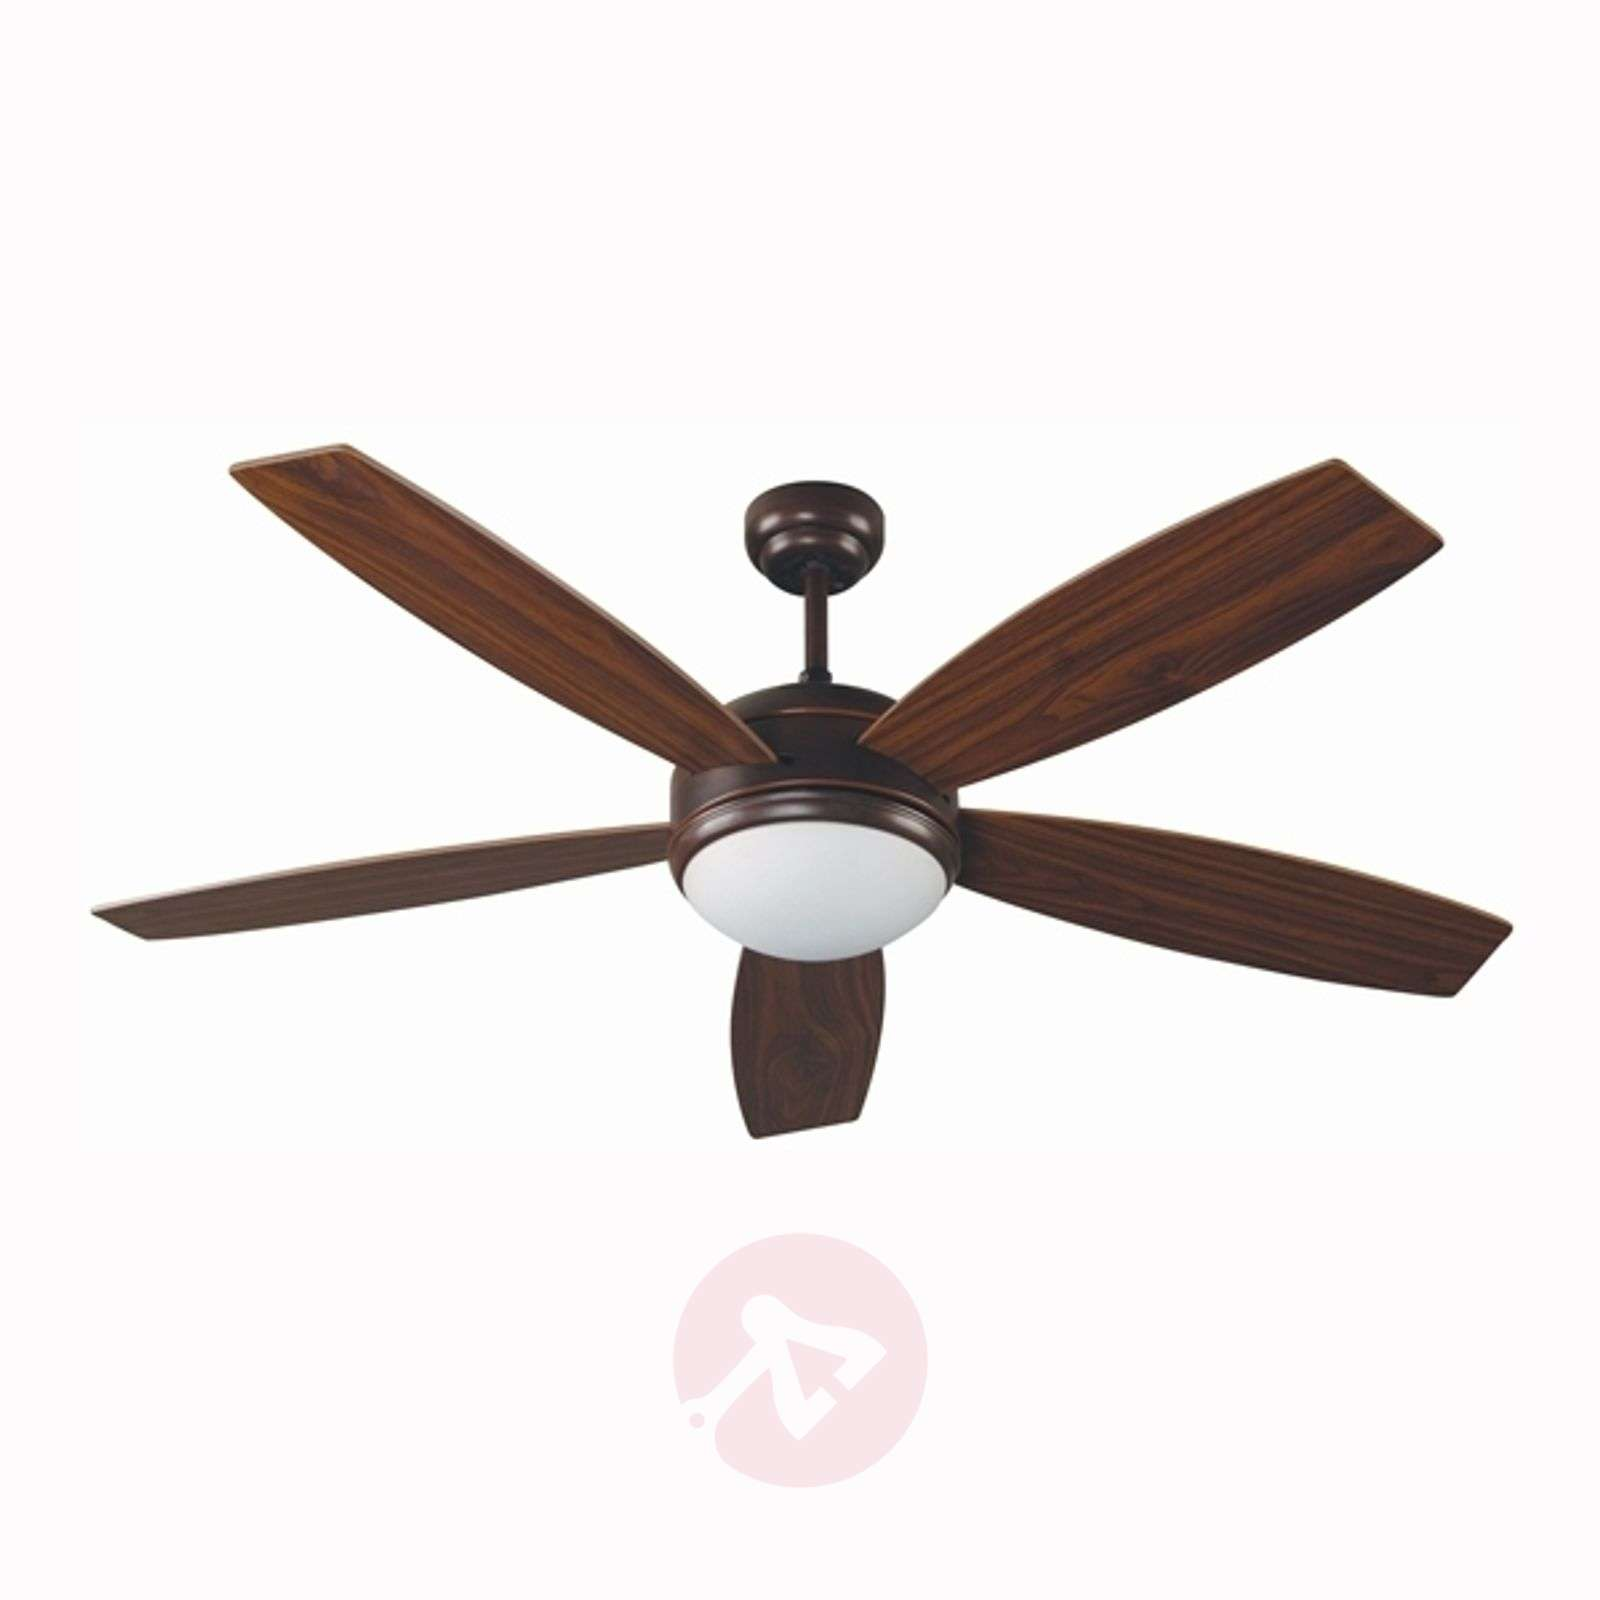 Vanu Large Ceiling Fan With Remote Control Brown 3506021 01